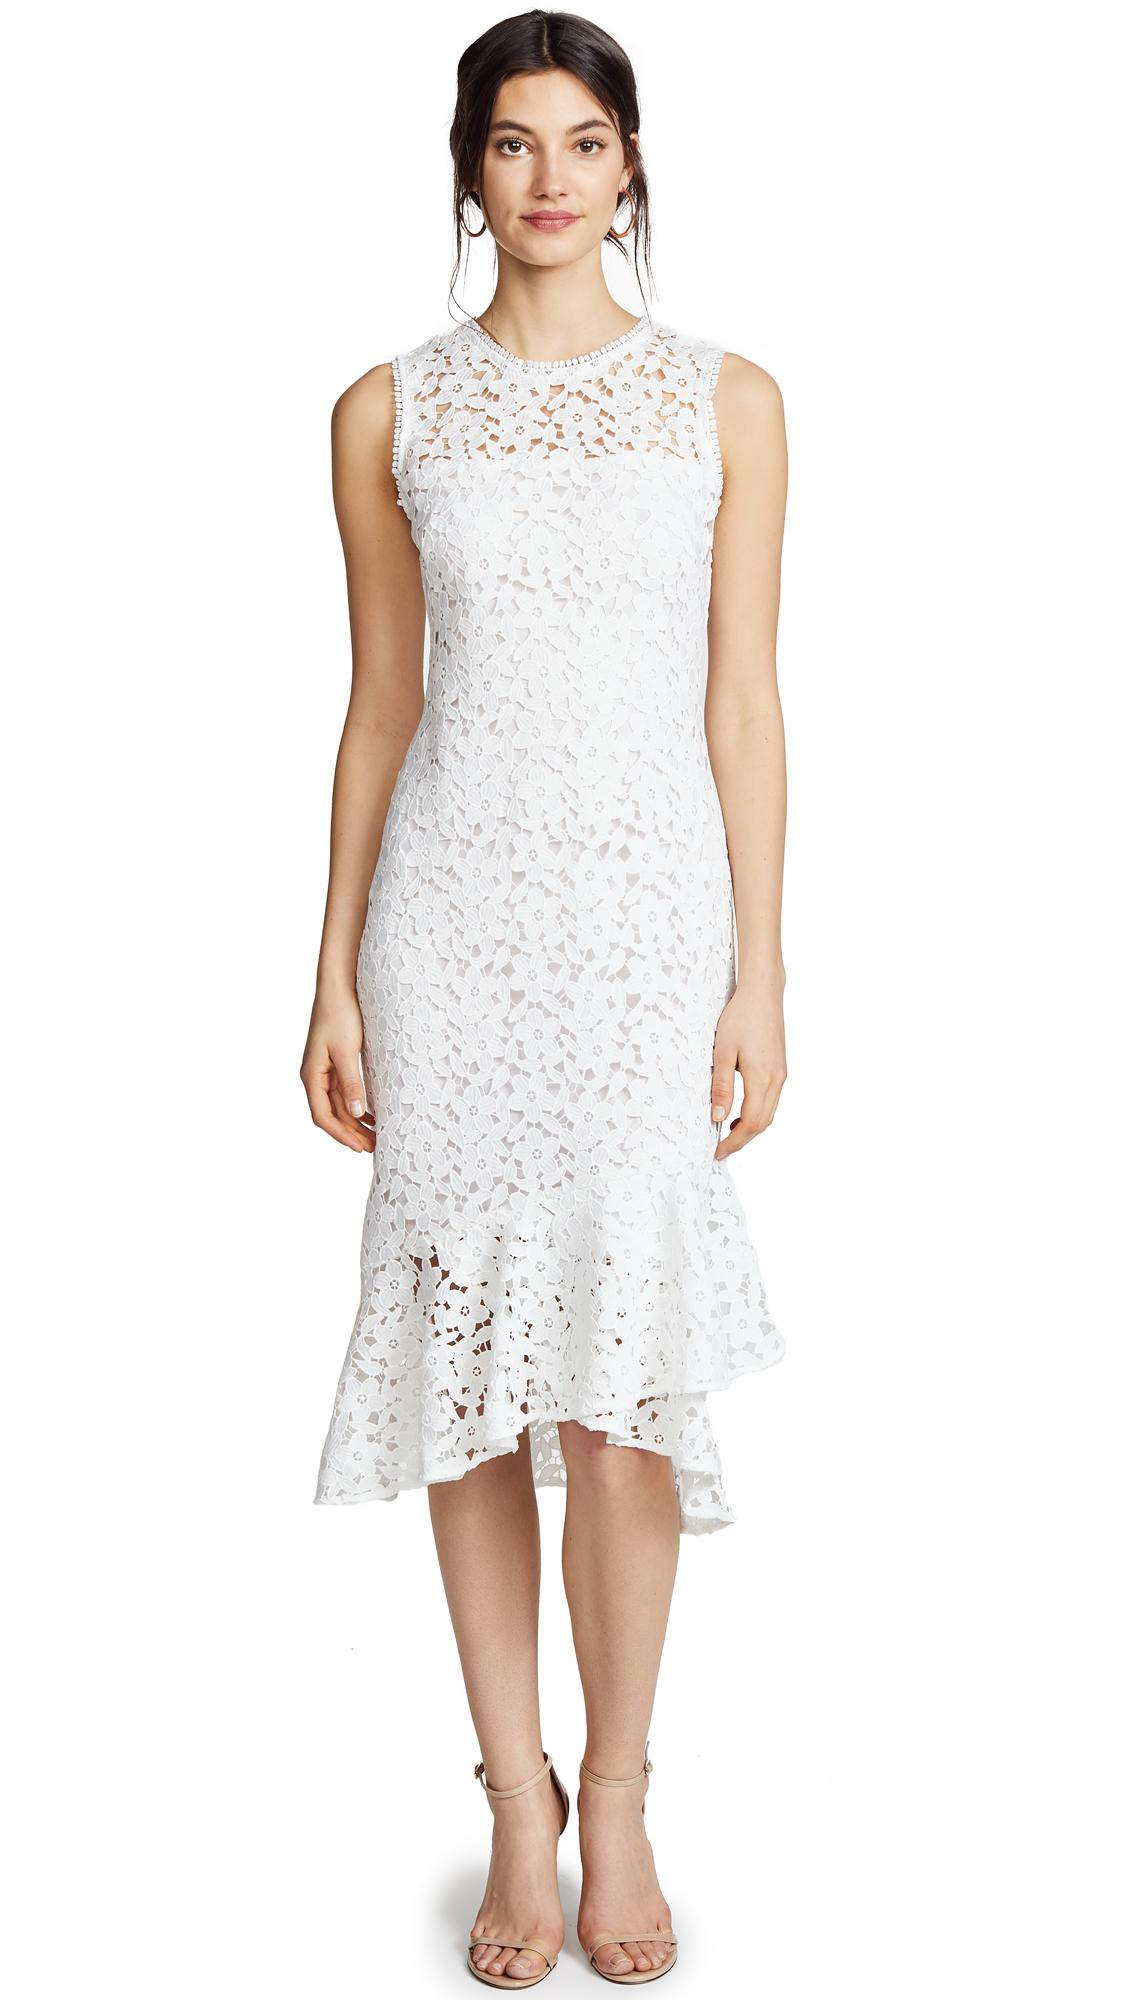 Carlita Sleeveless Asymmetric Lace Dress In Off White